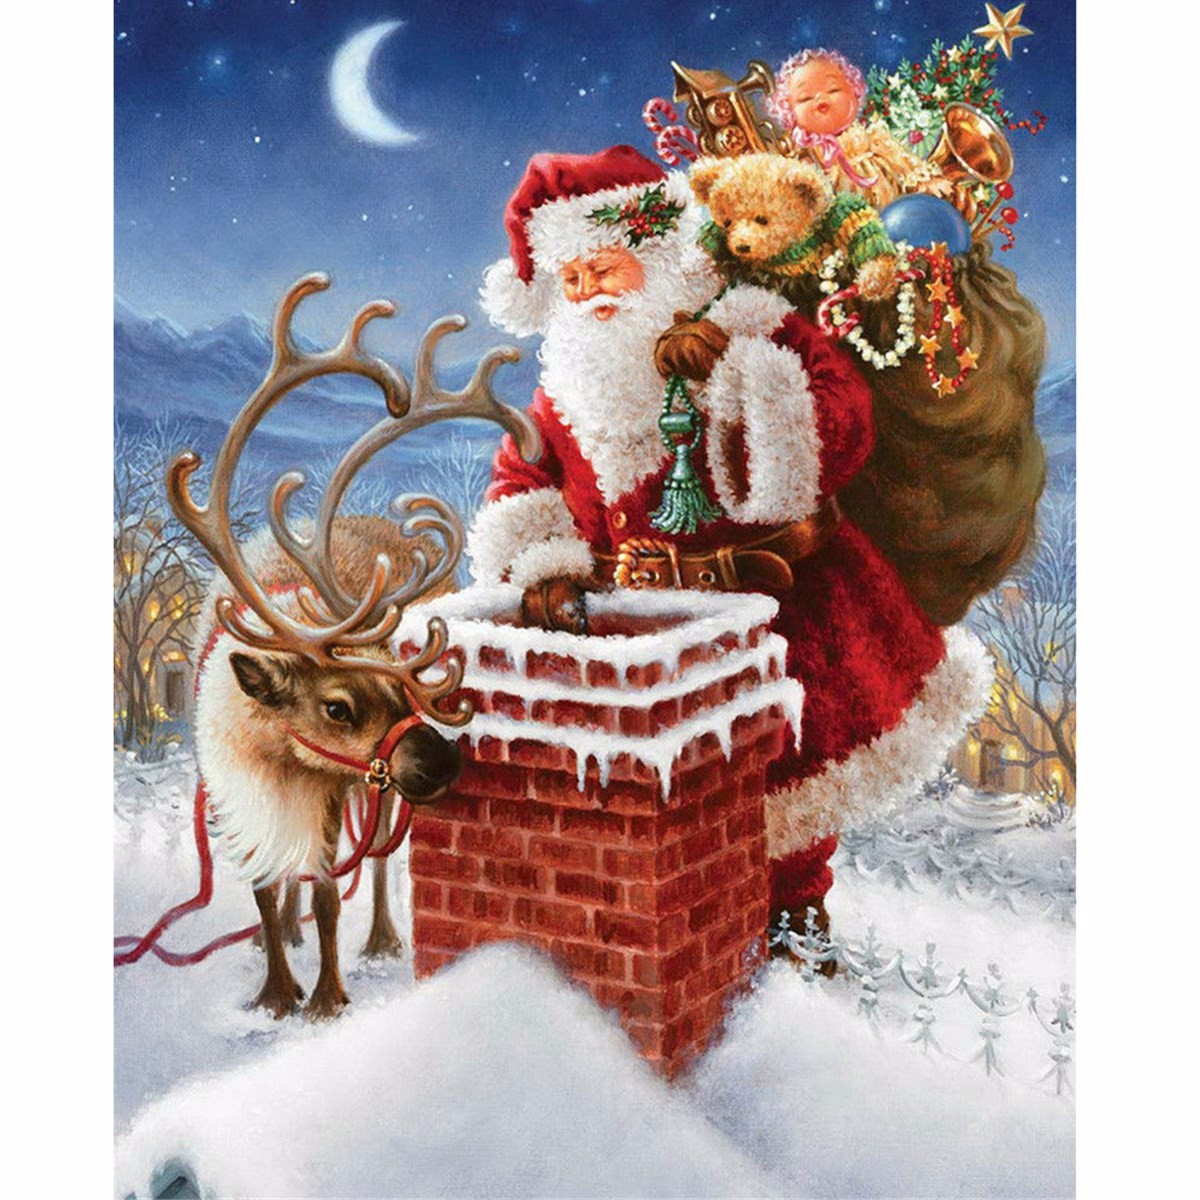 40x30CM 5D Diamond Painting DIY Santa Father Xmas Cross Stitch Embroidery